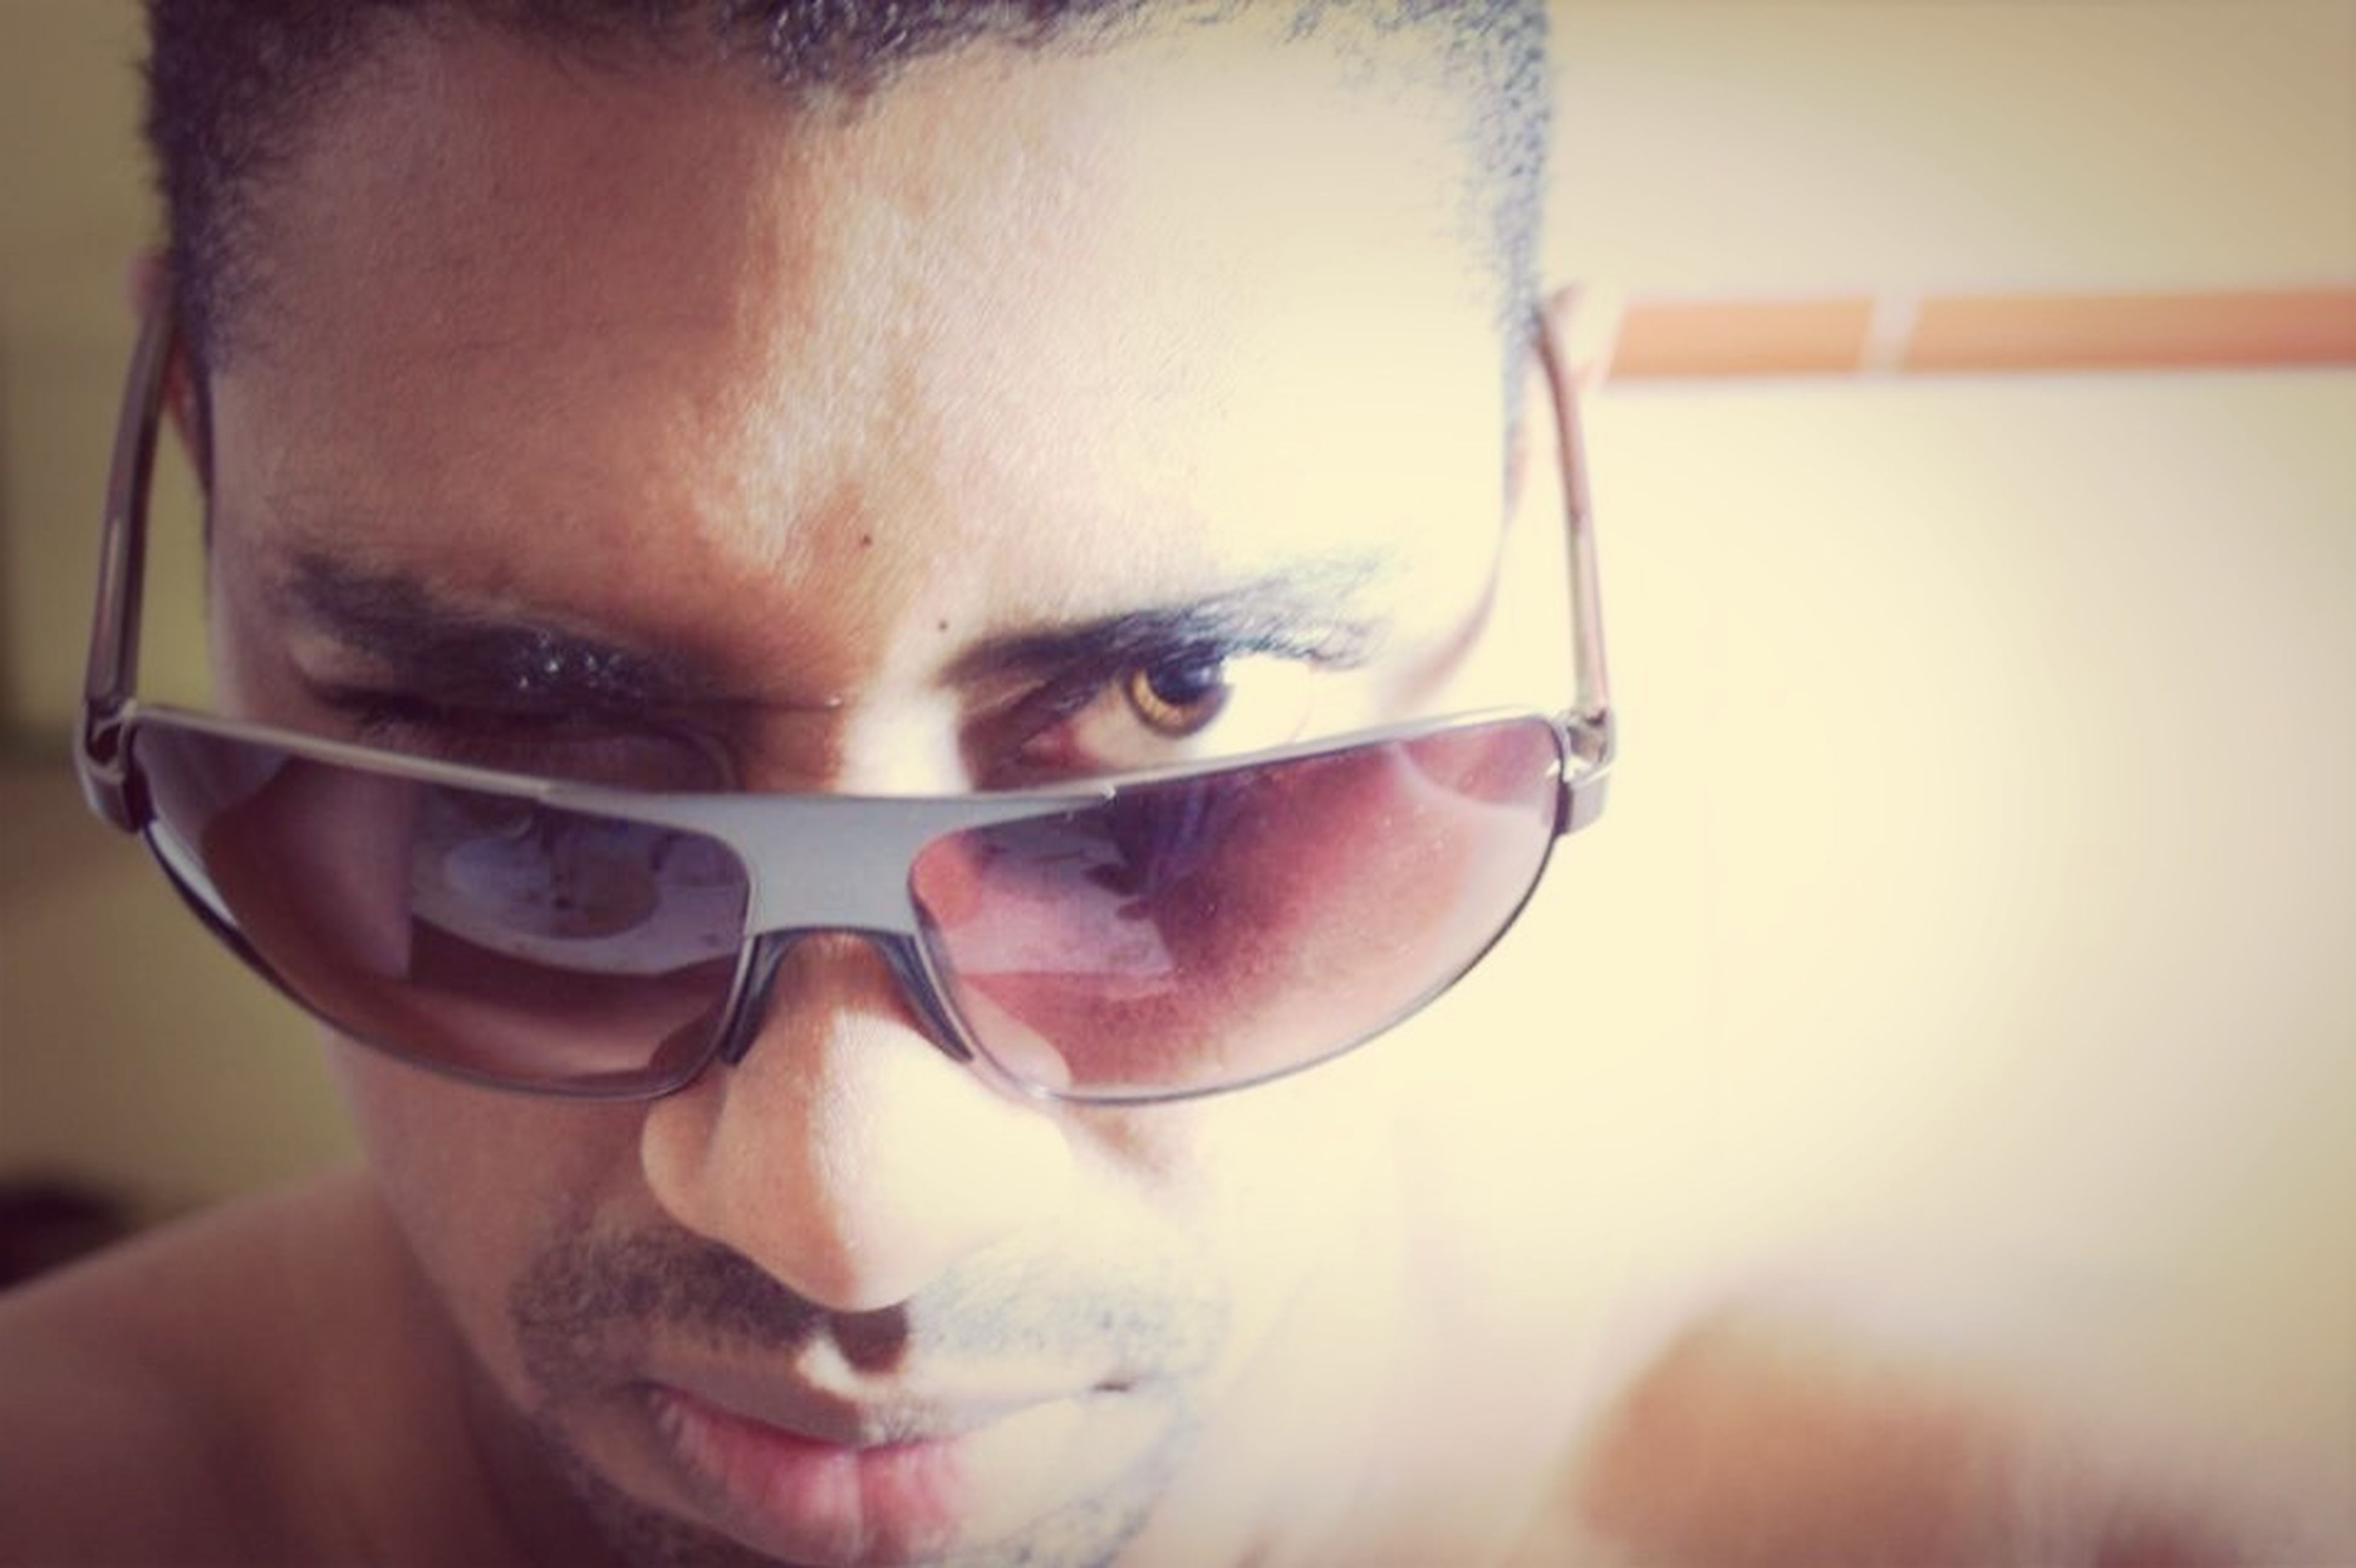 headshot, lifestyles, person, close-up, looking at camera, portrait, young adult, leisure activity, human face, front view, indoors, focus on foreground, head and shoulders, sunglasses, holding, young men